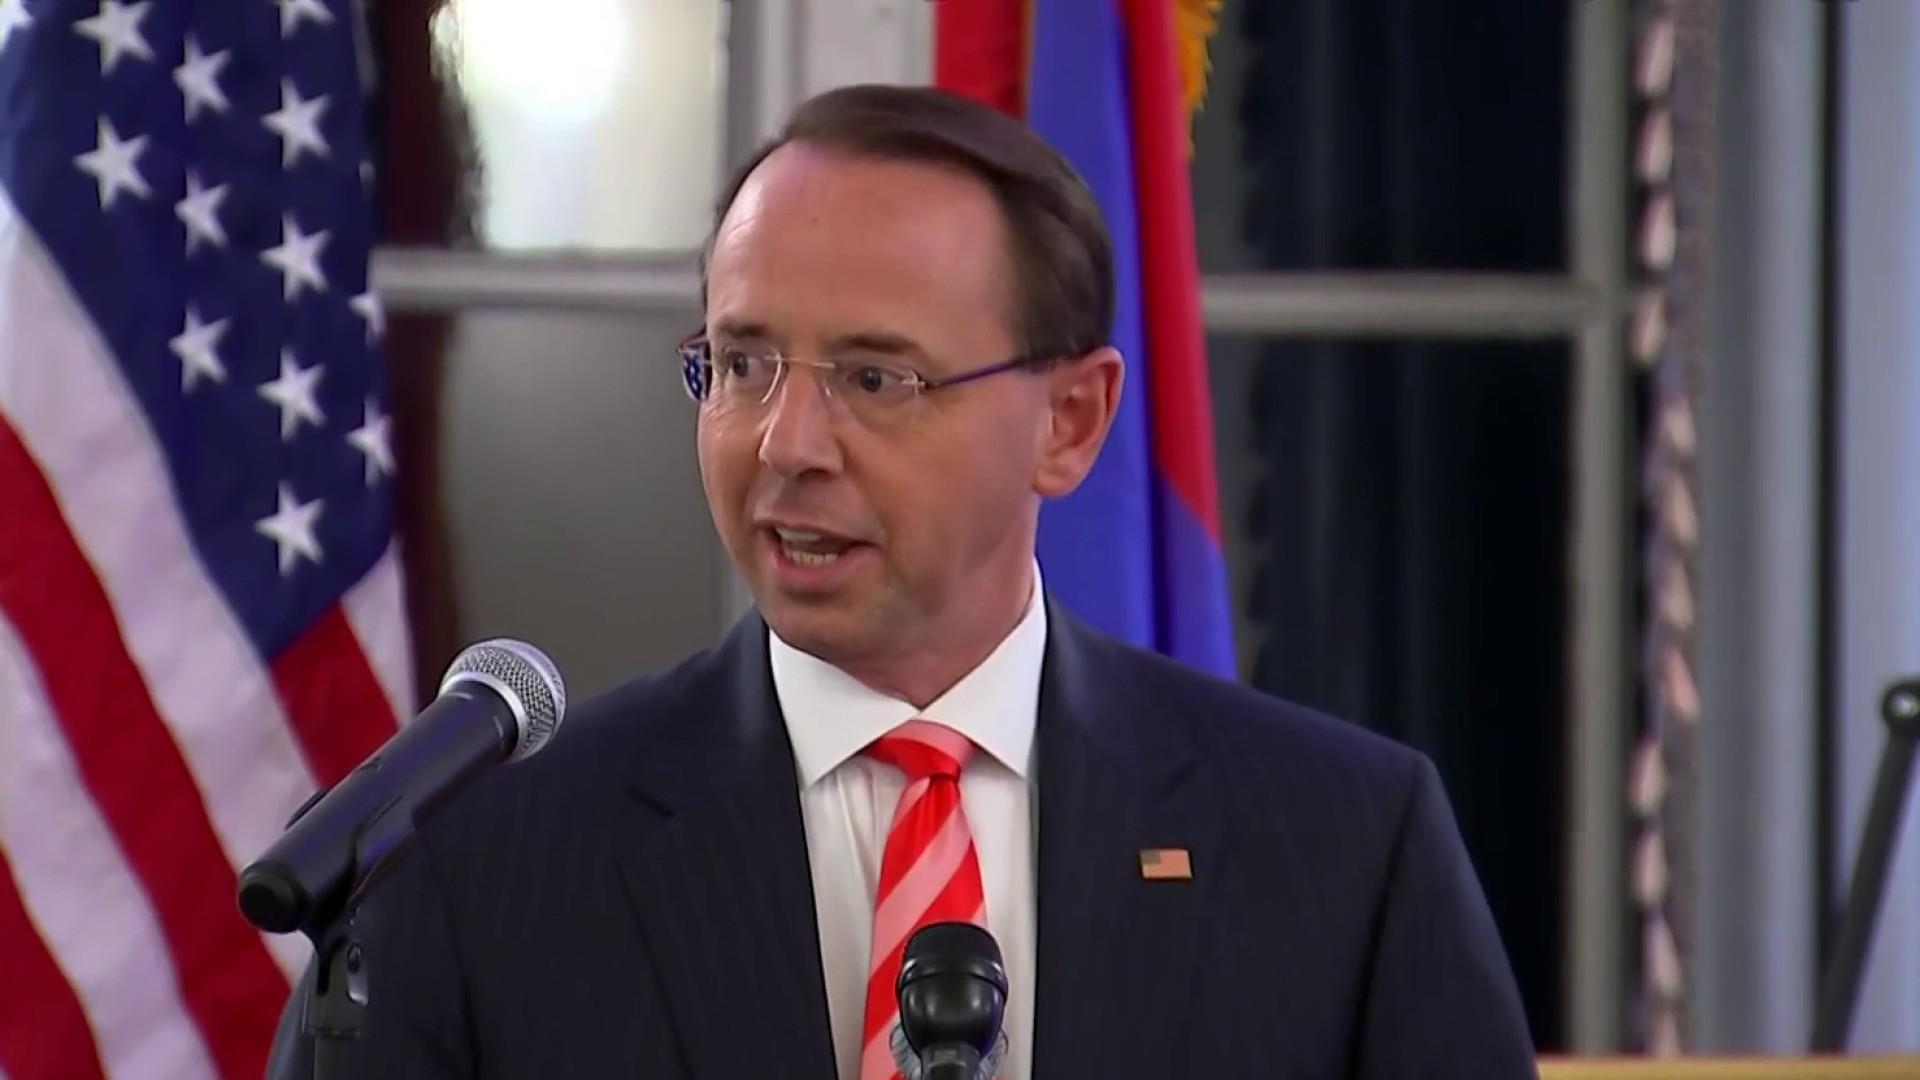 WaPo: Rosenstein told Trump he agreed President was treated unfairly